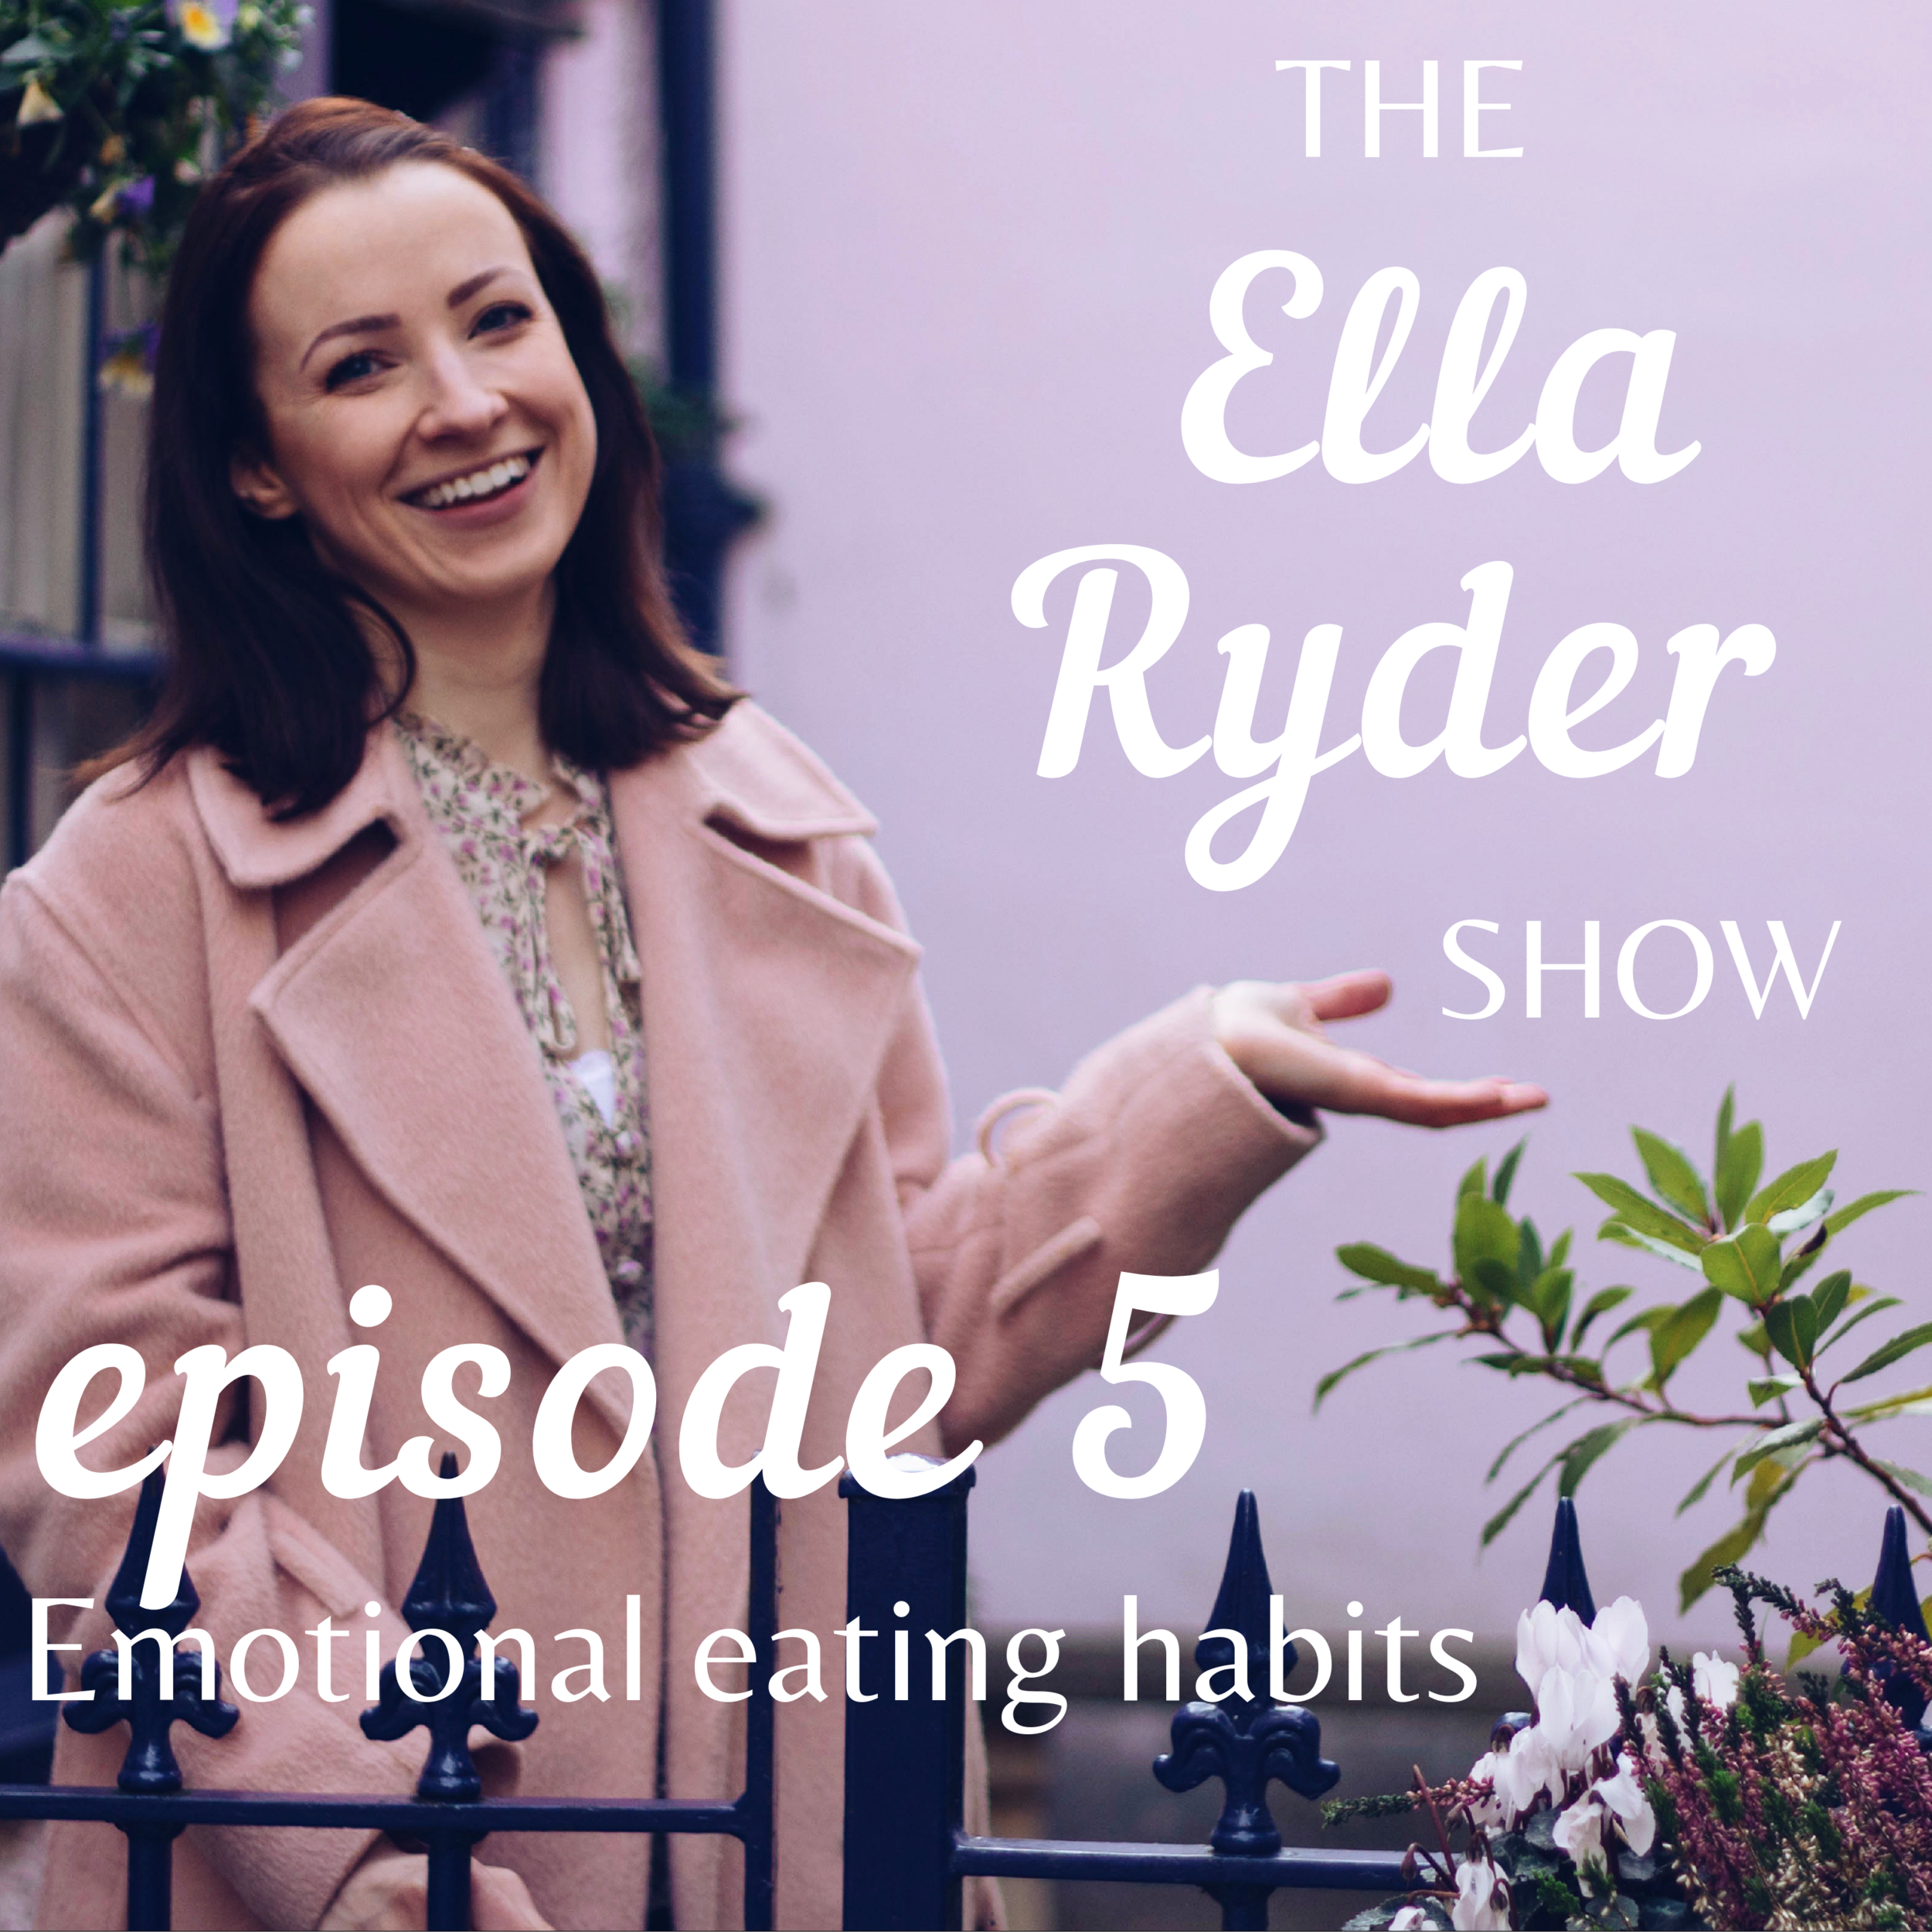 ERS 05: How to work through emotional eating habits